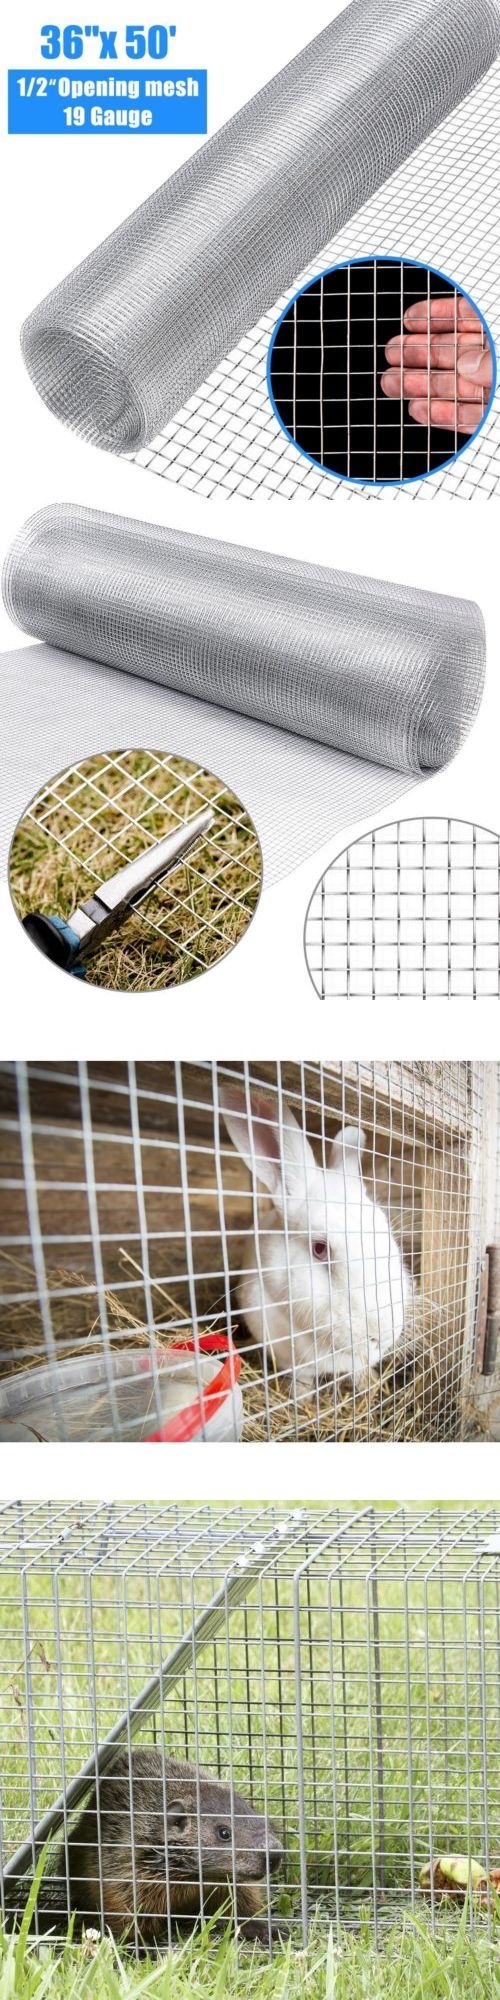 36 X 50 1 2inch Home Wire Fence Mesh Cage Roll 19 Gauge Wiring Galvanized Us Hardware Cloth Metal 180985 Pinterest